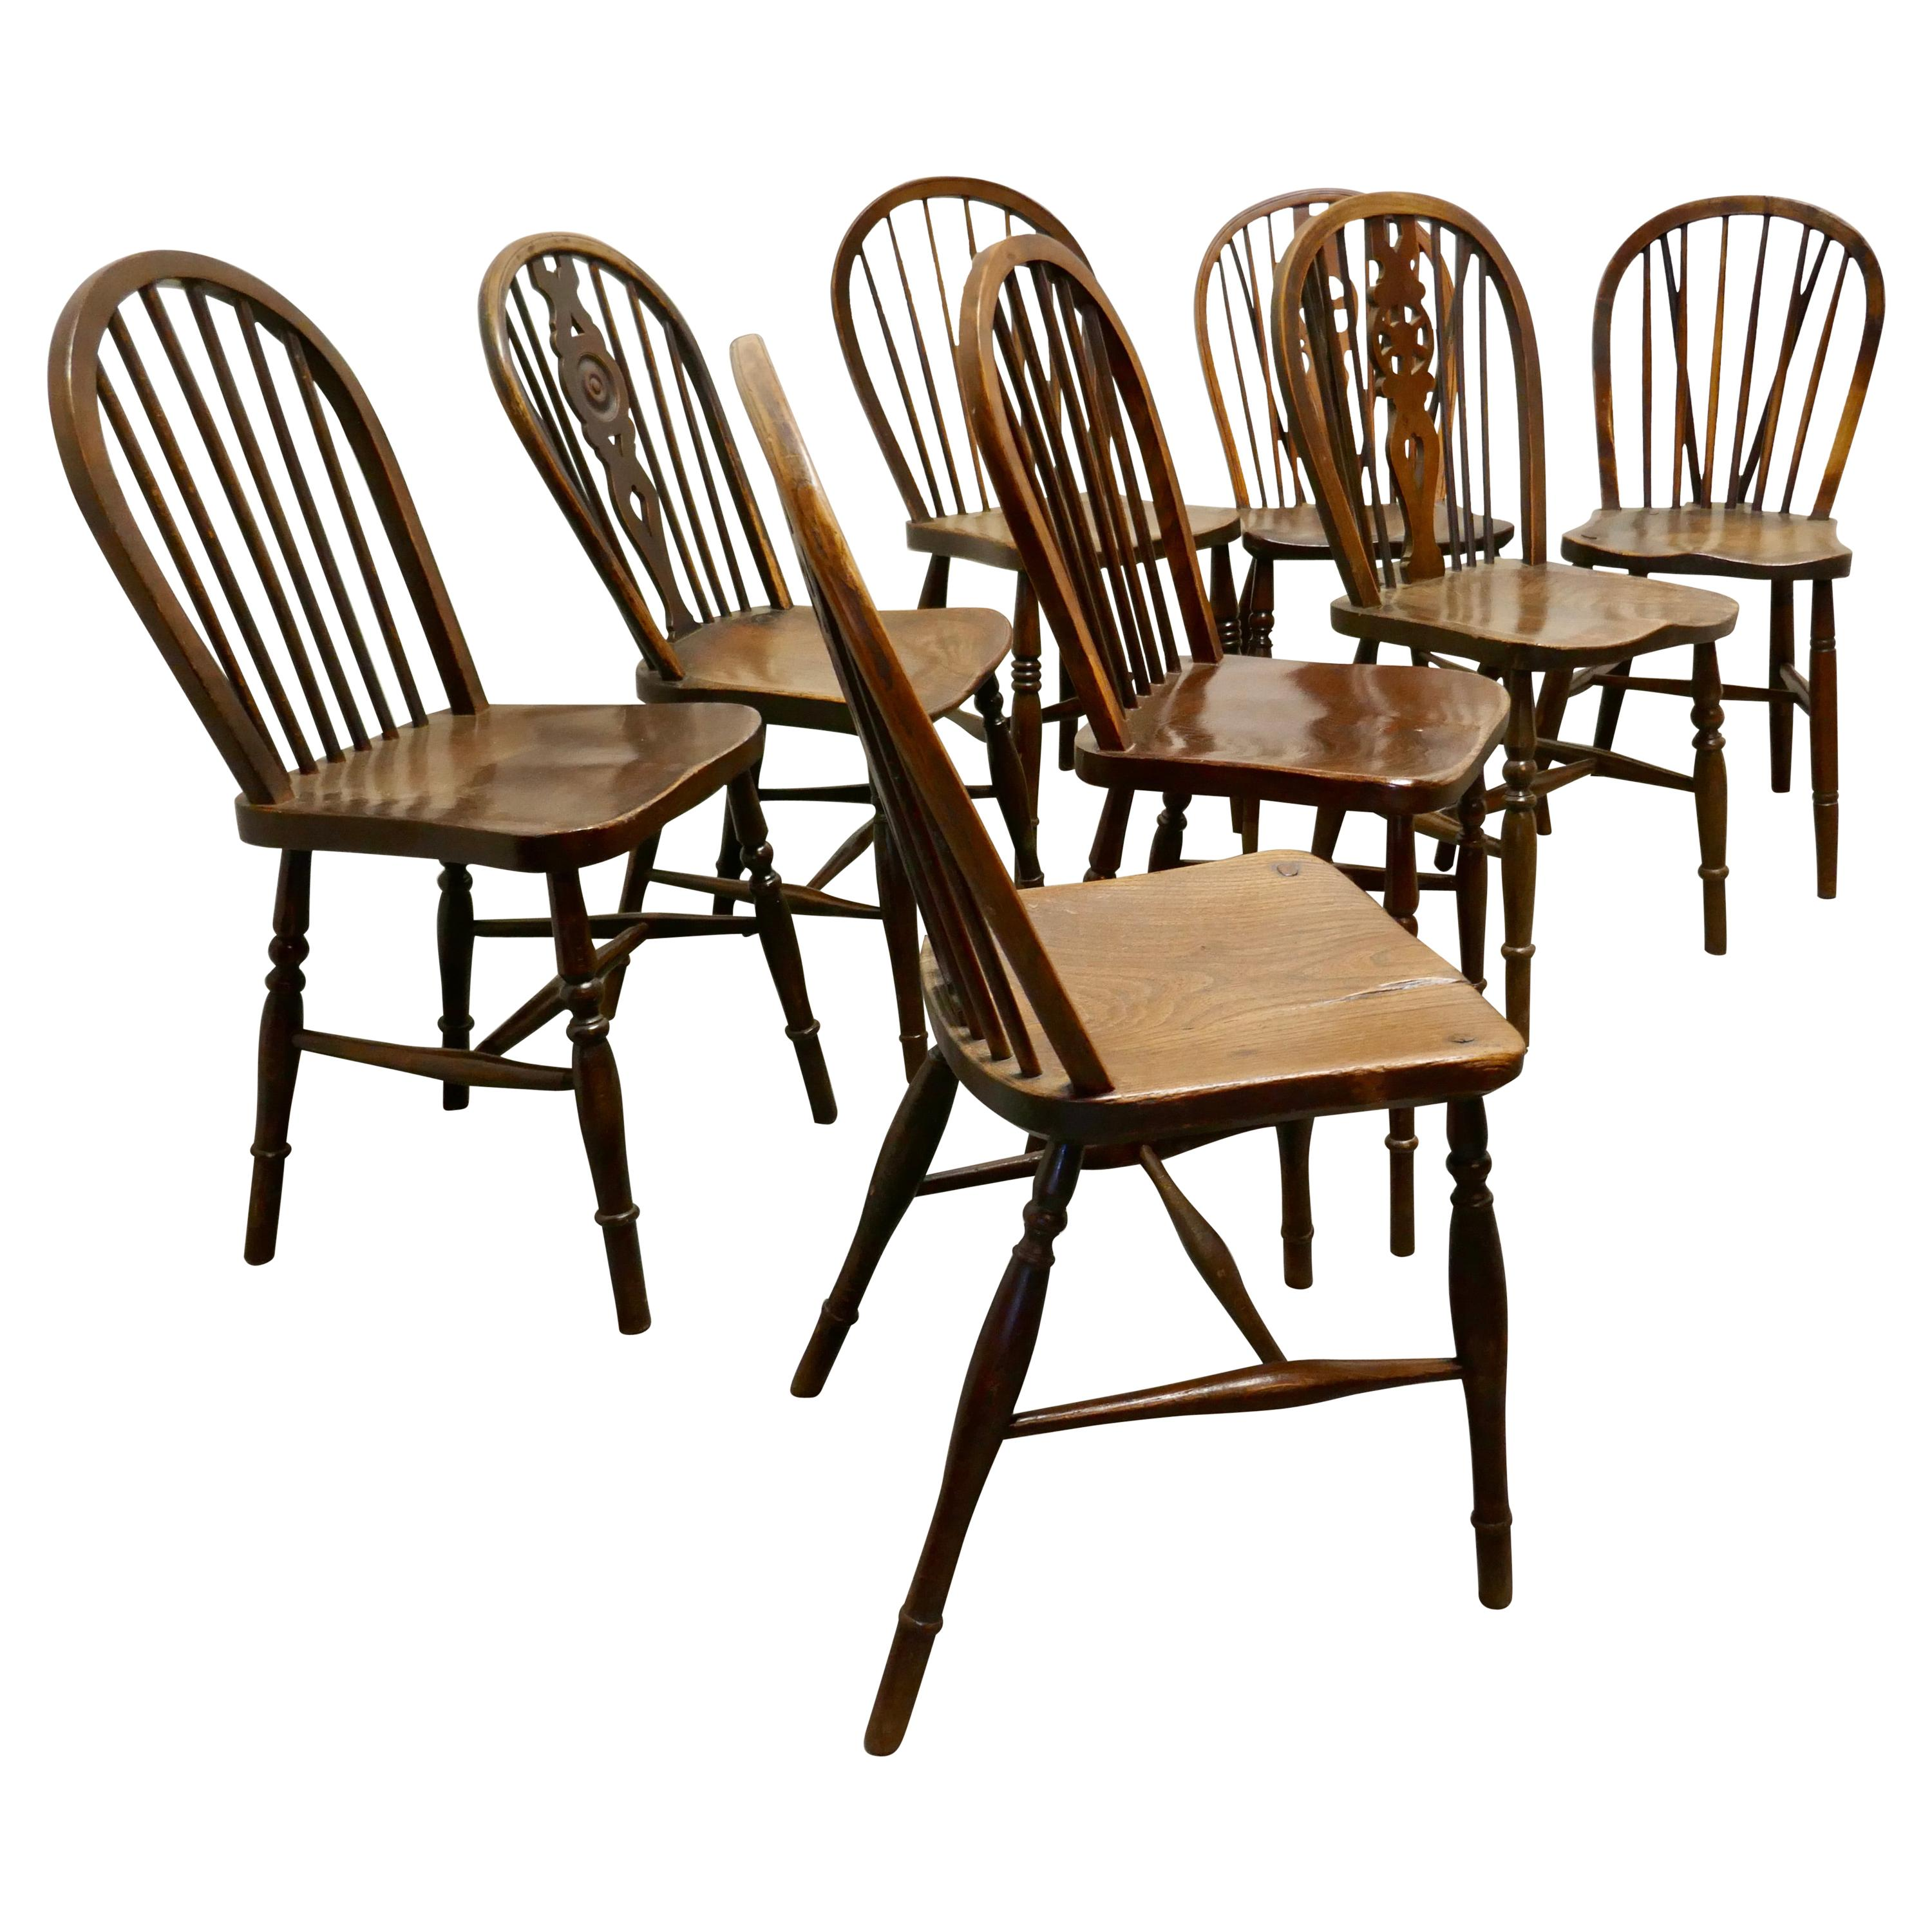 A Collection of 8 Beech and Elm Country Windsor Chairs